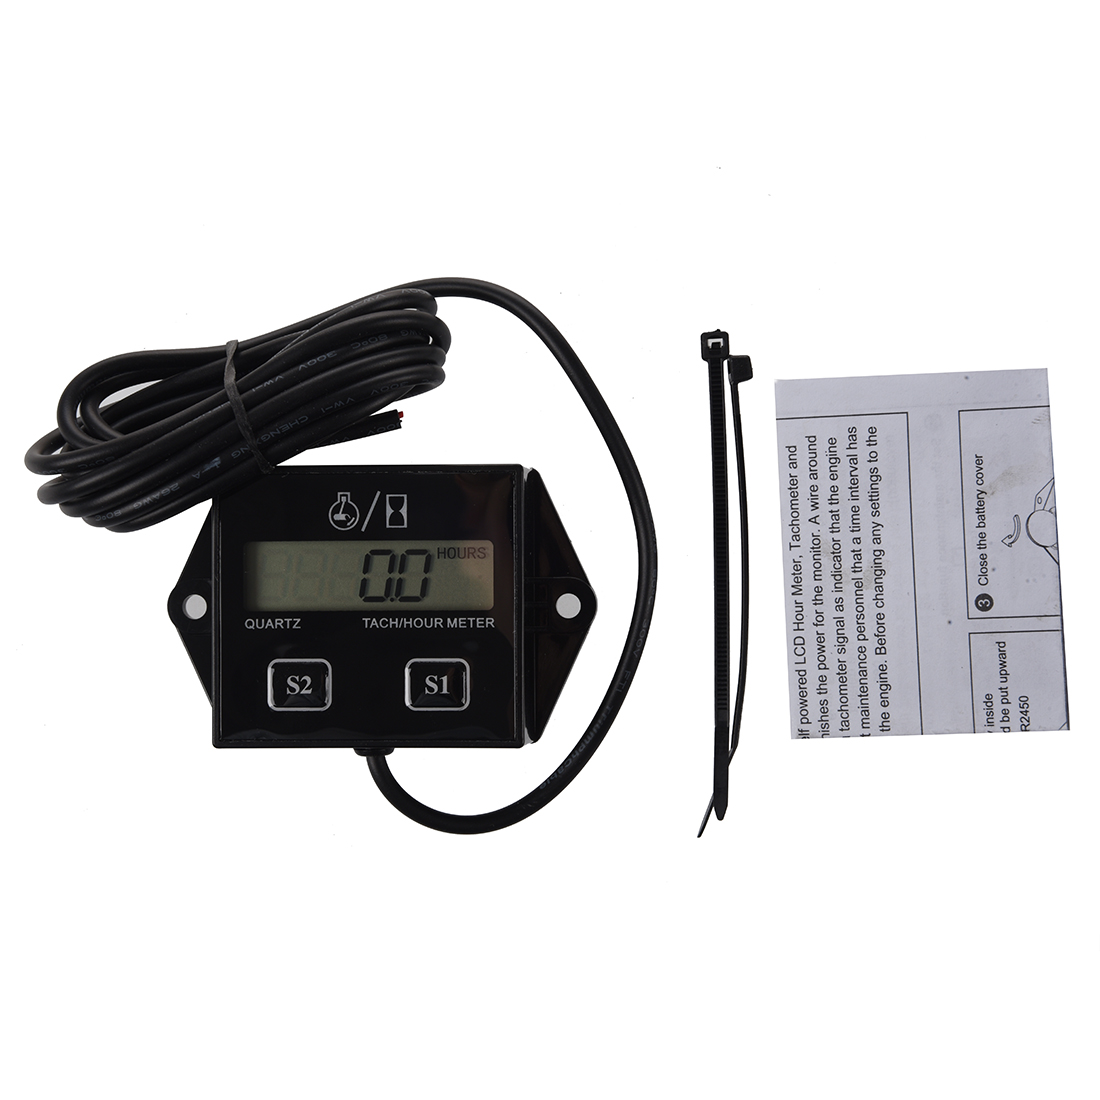 Honda Atv Hour Meter : Spark plugs engine digital tach hour meter tachometer